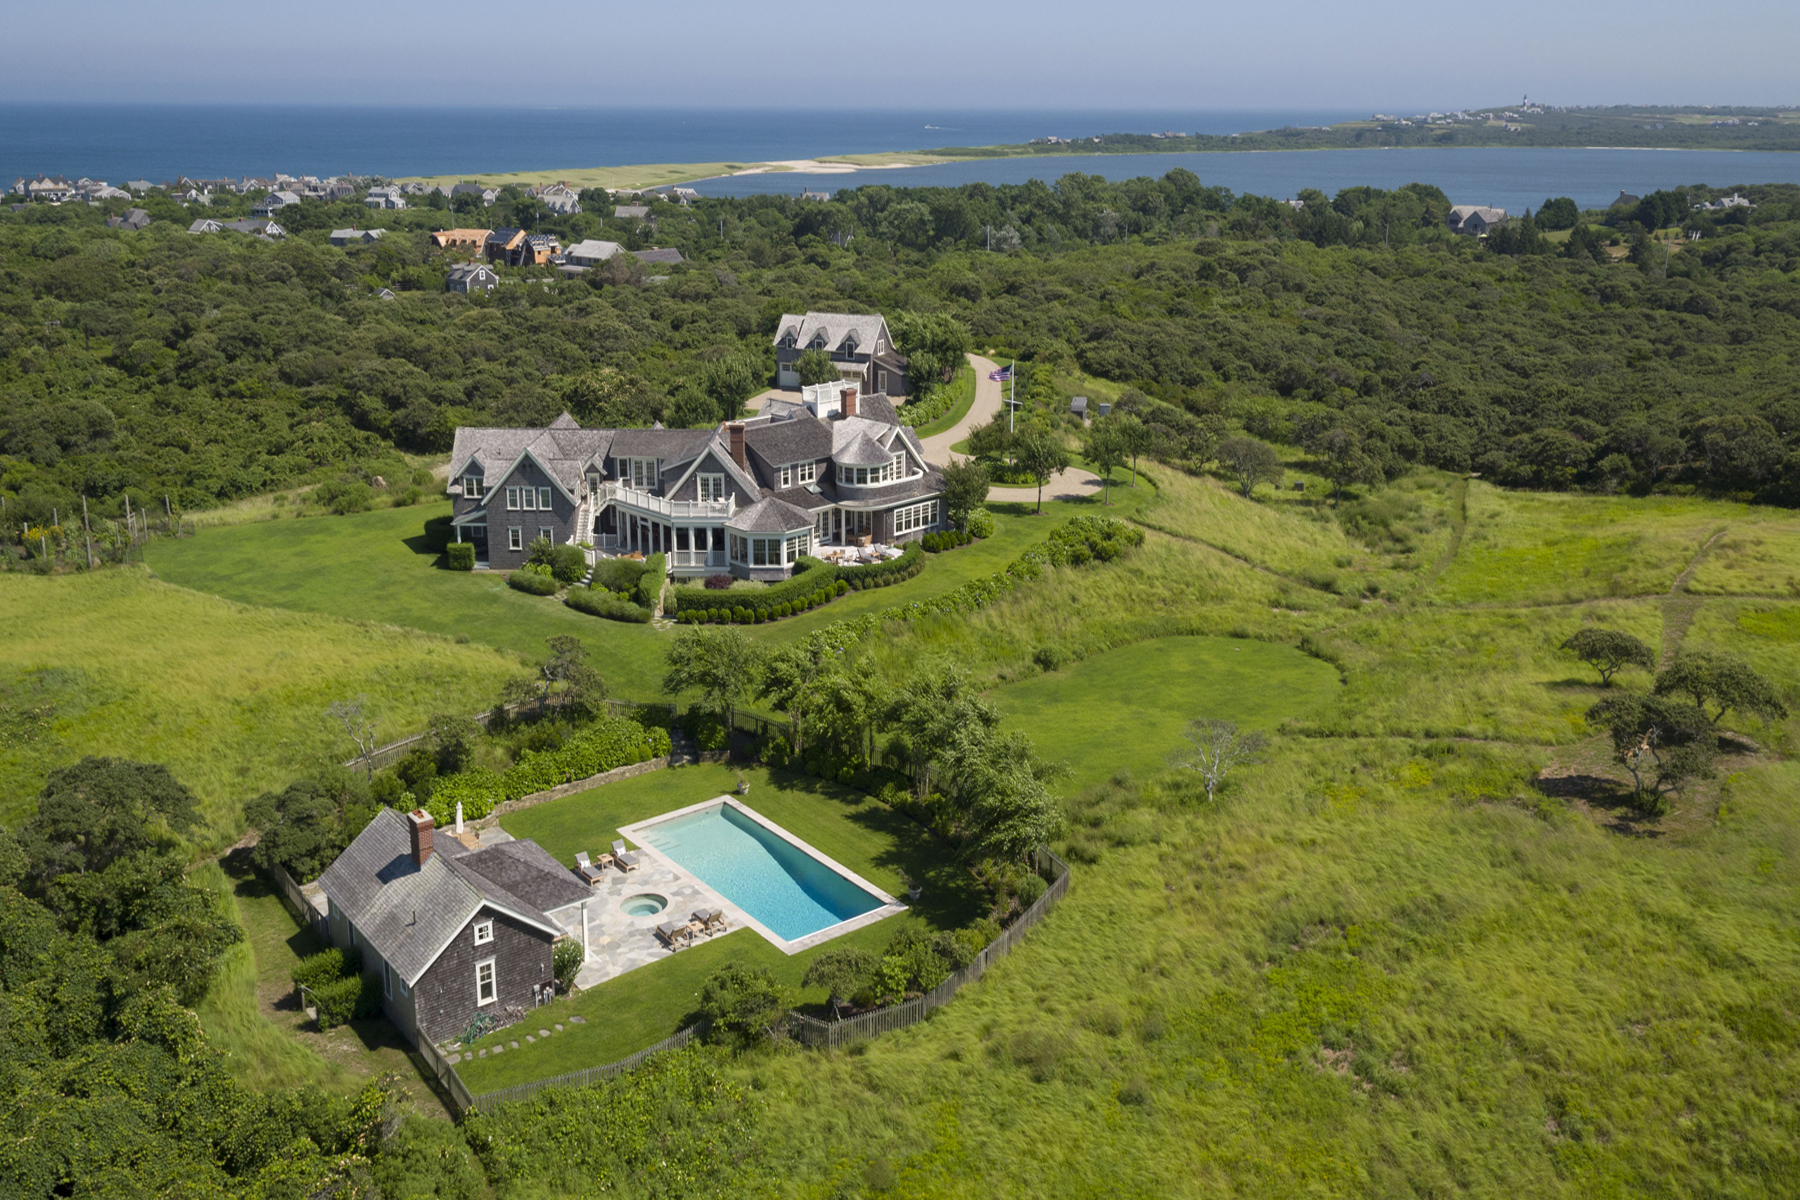 Single Family Home for Sale at Private Estate Over 14 Acres 30R Quidnet Rd Nantucket, Massachusetts 02554 United States